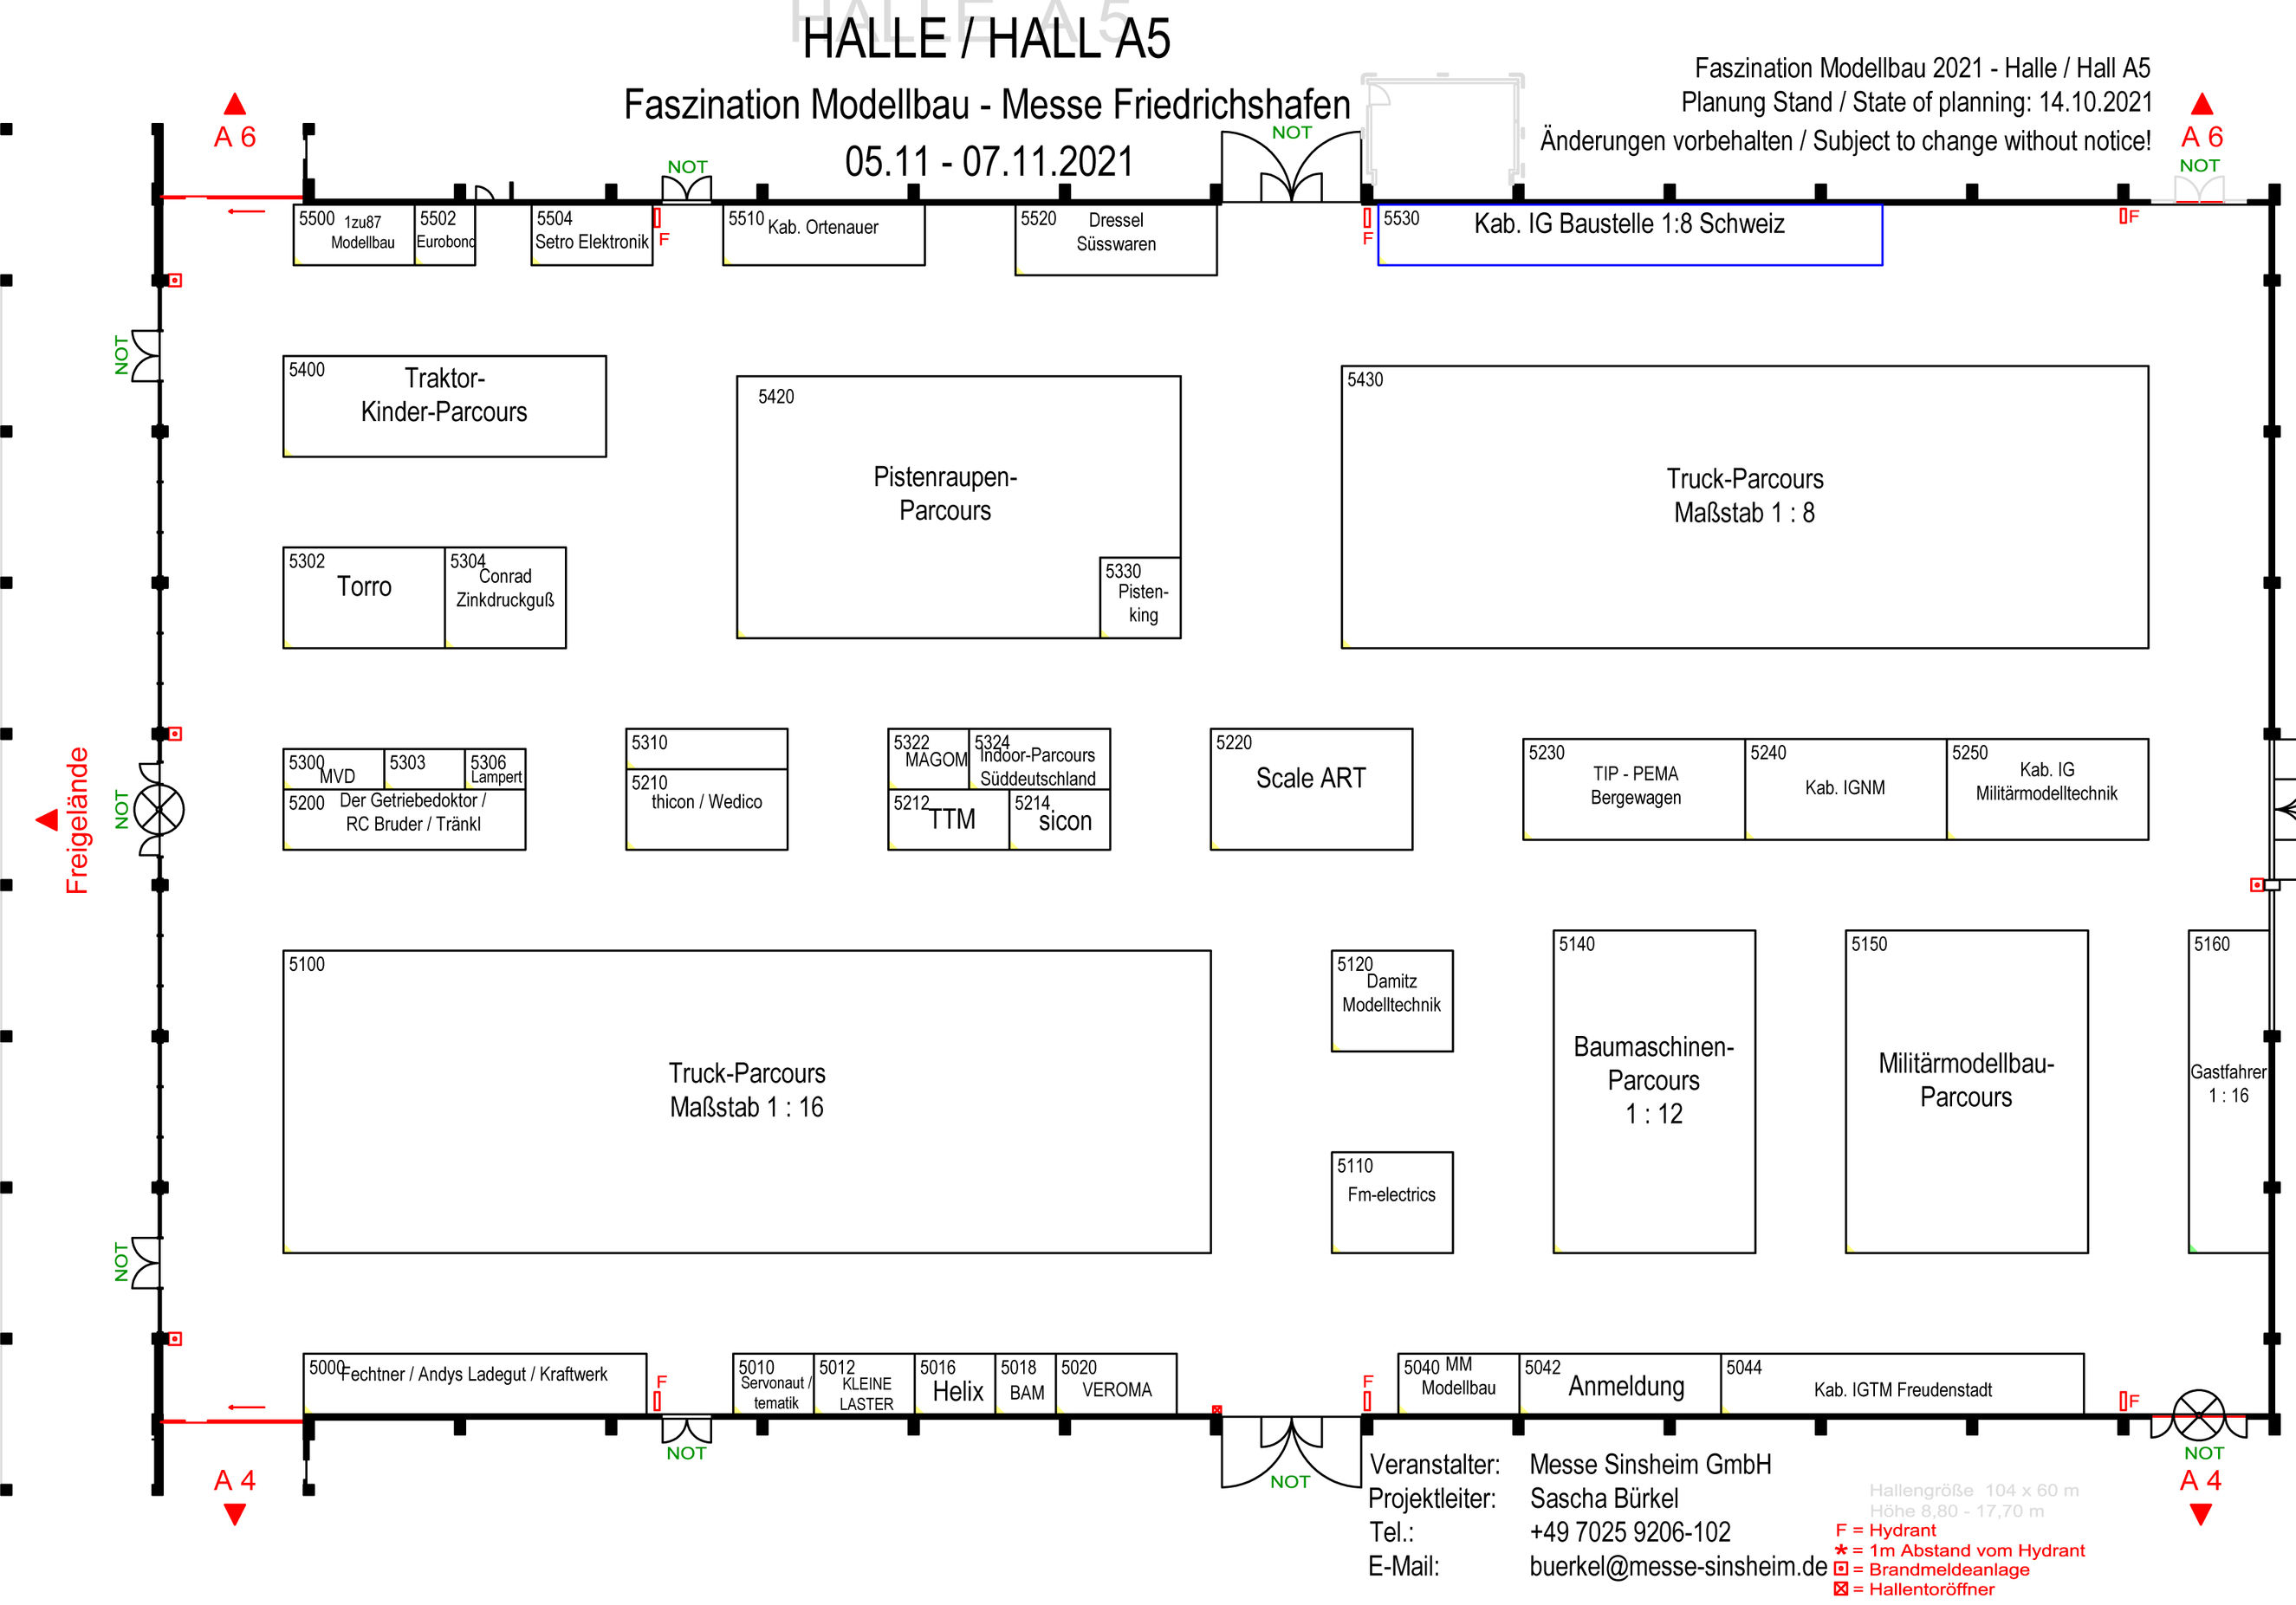 Halle A5